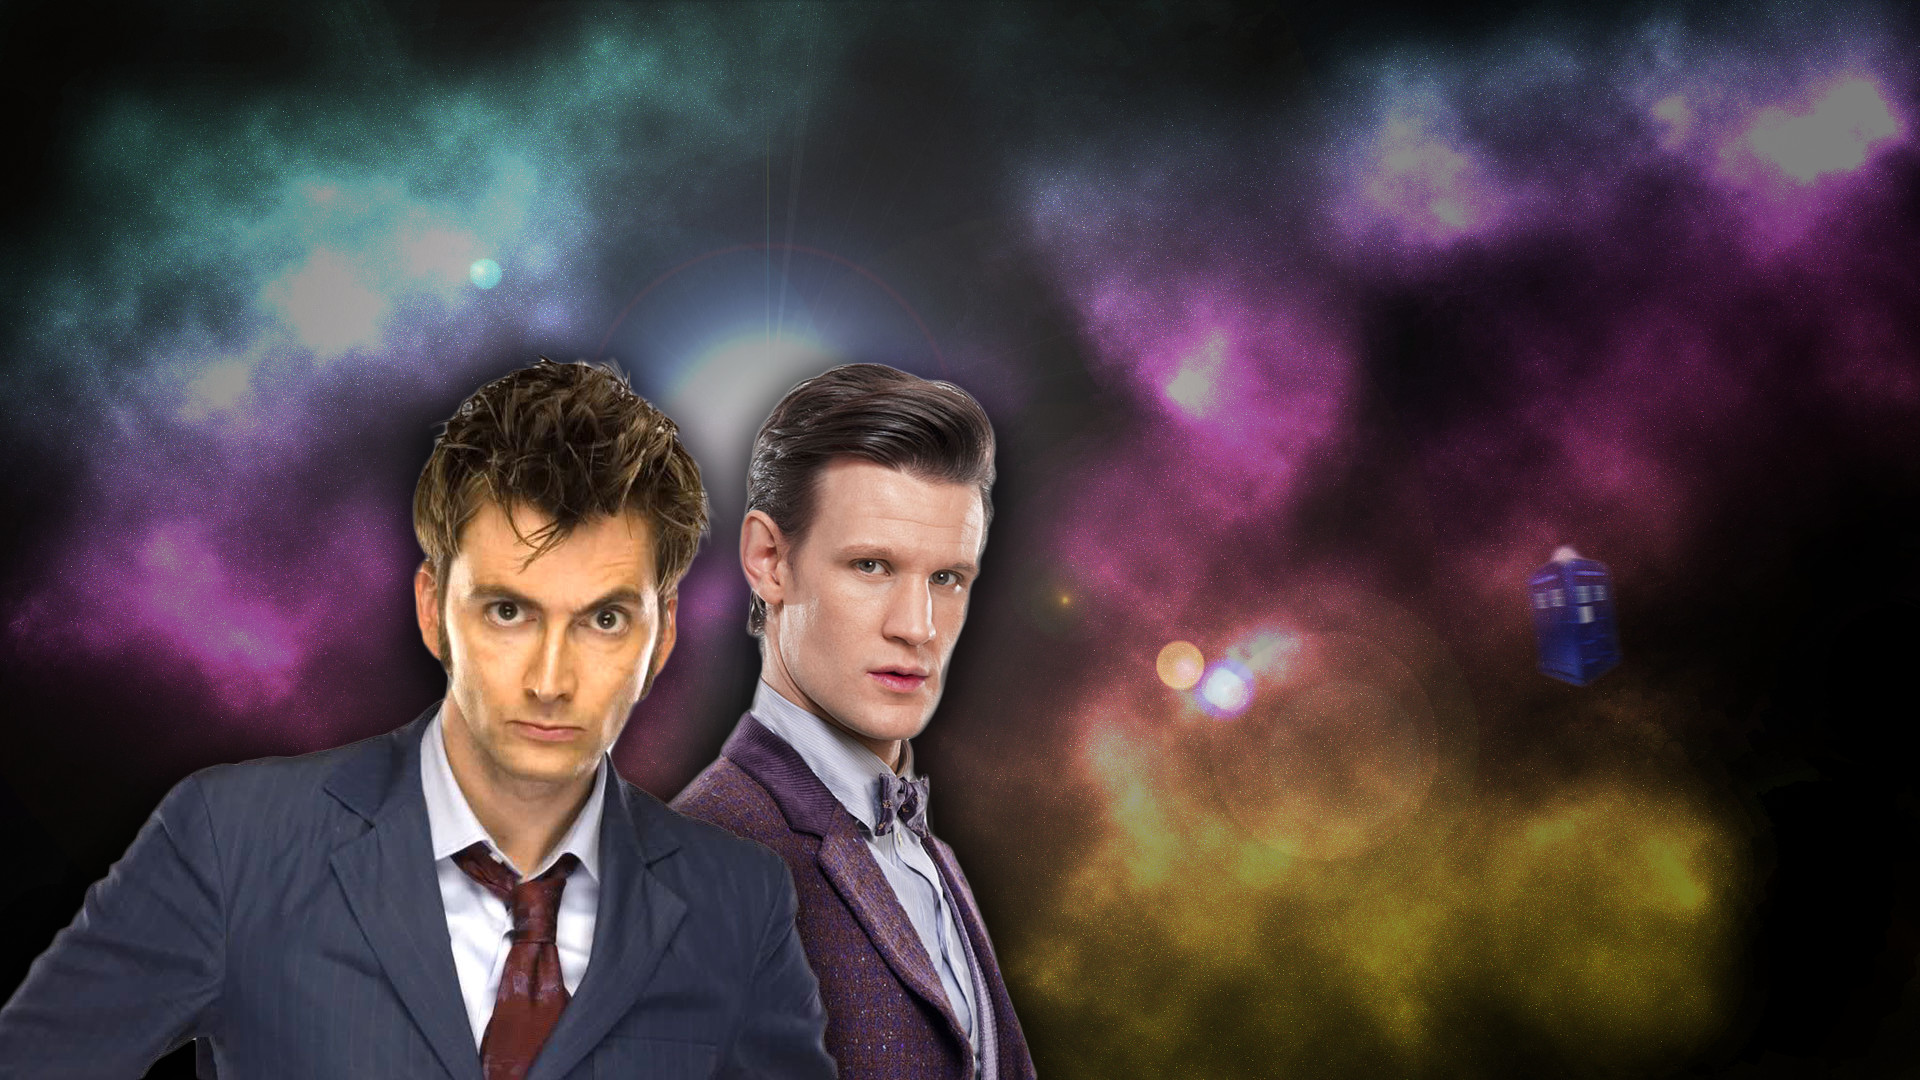 David Tennant Doctor Who Wallpaper 62 Images